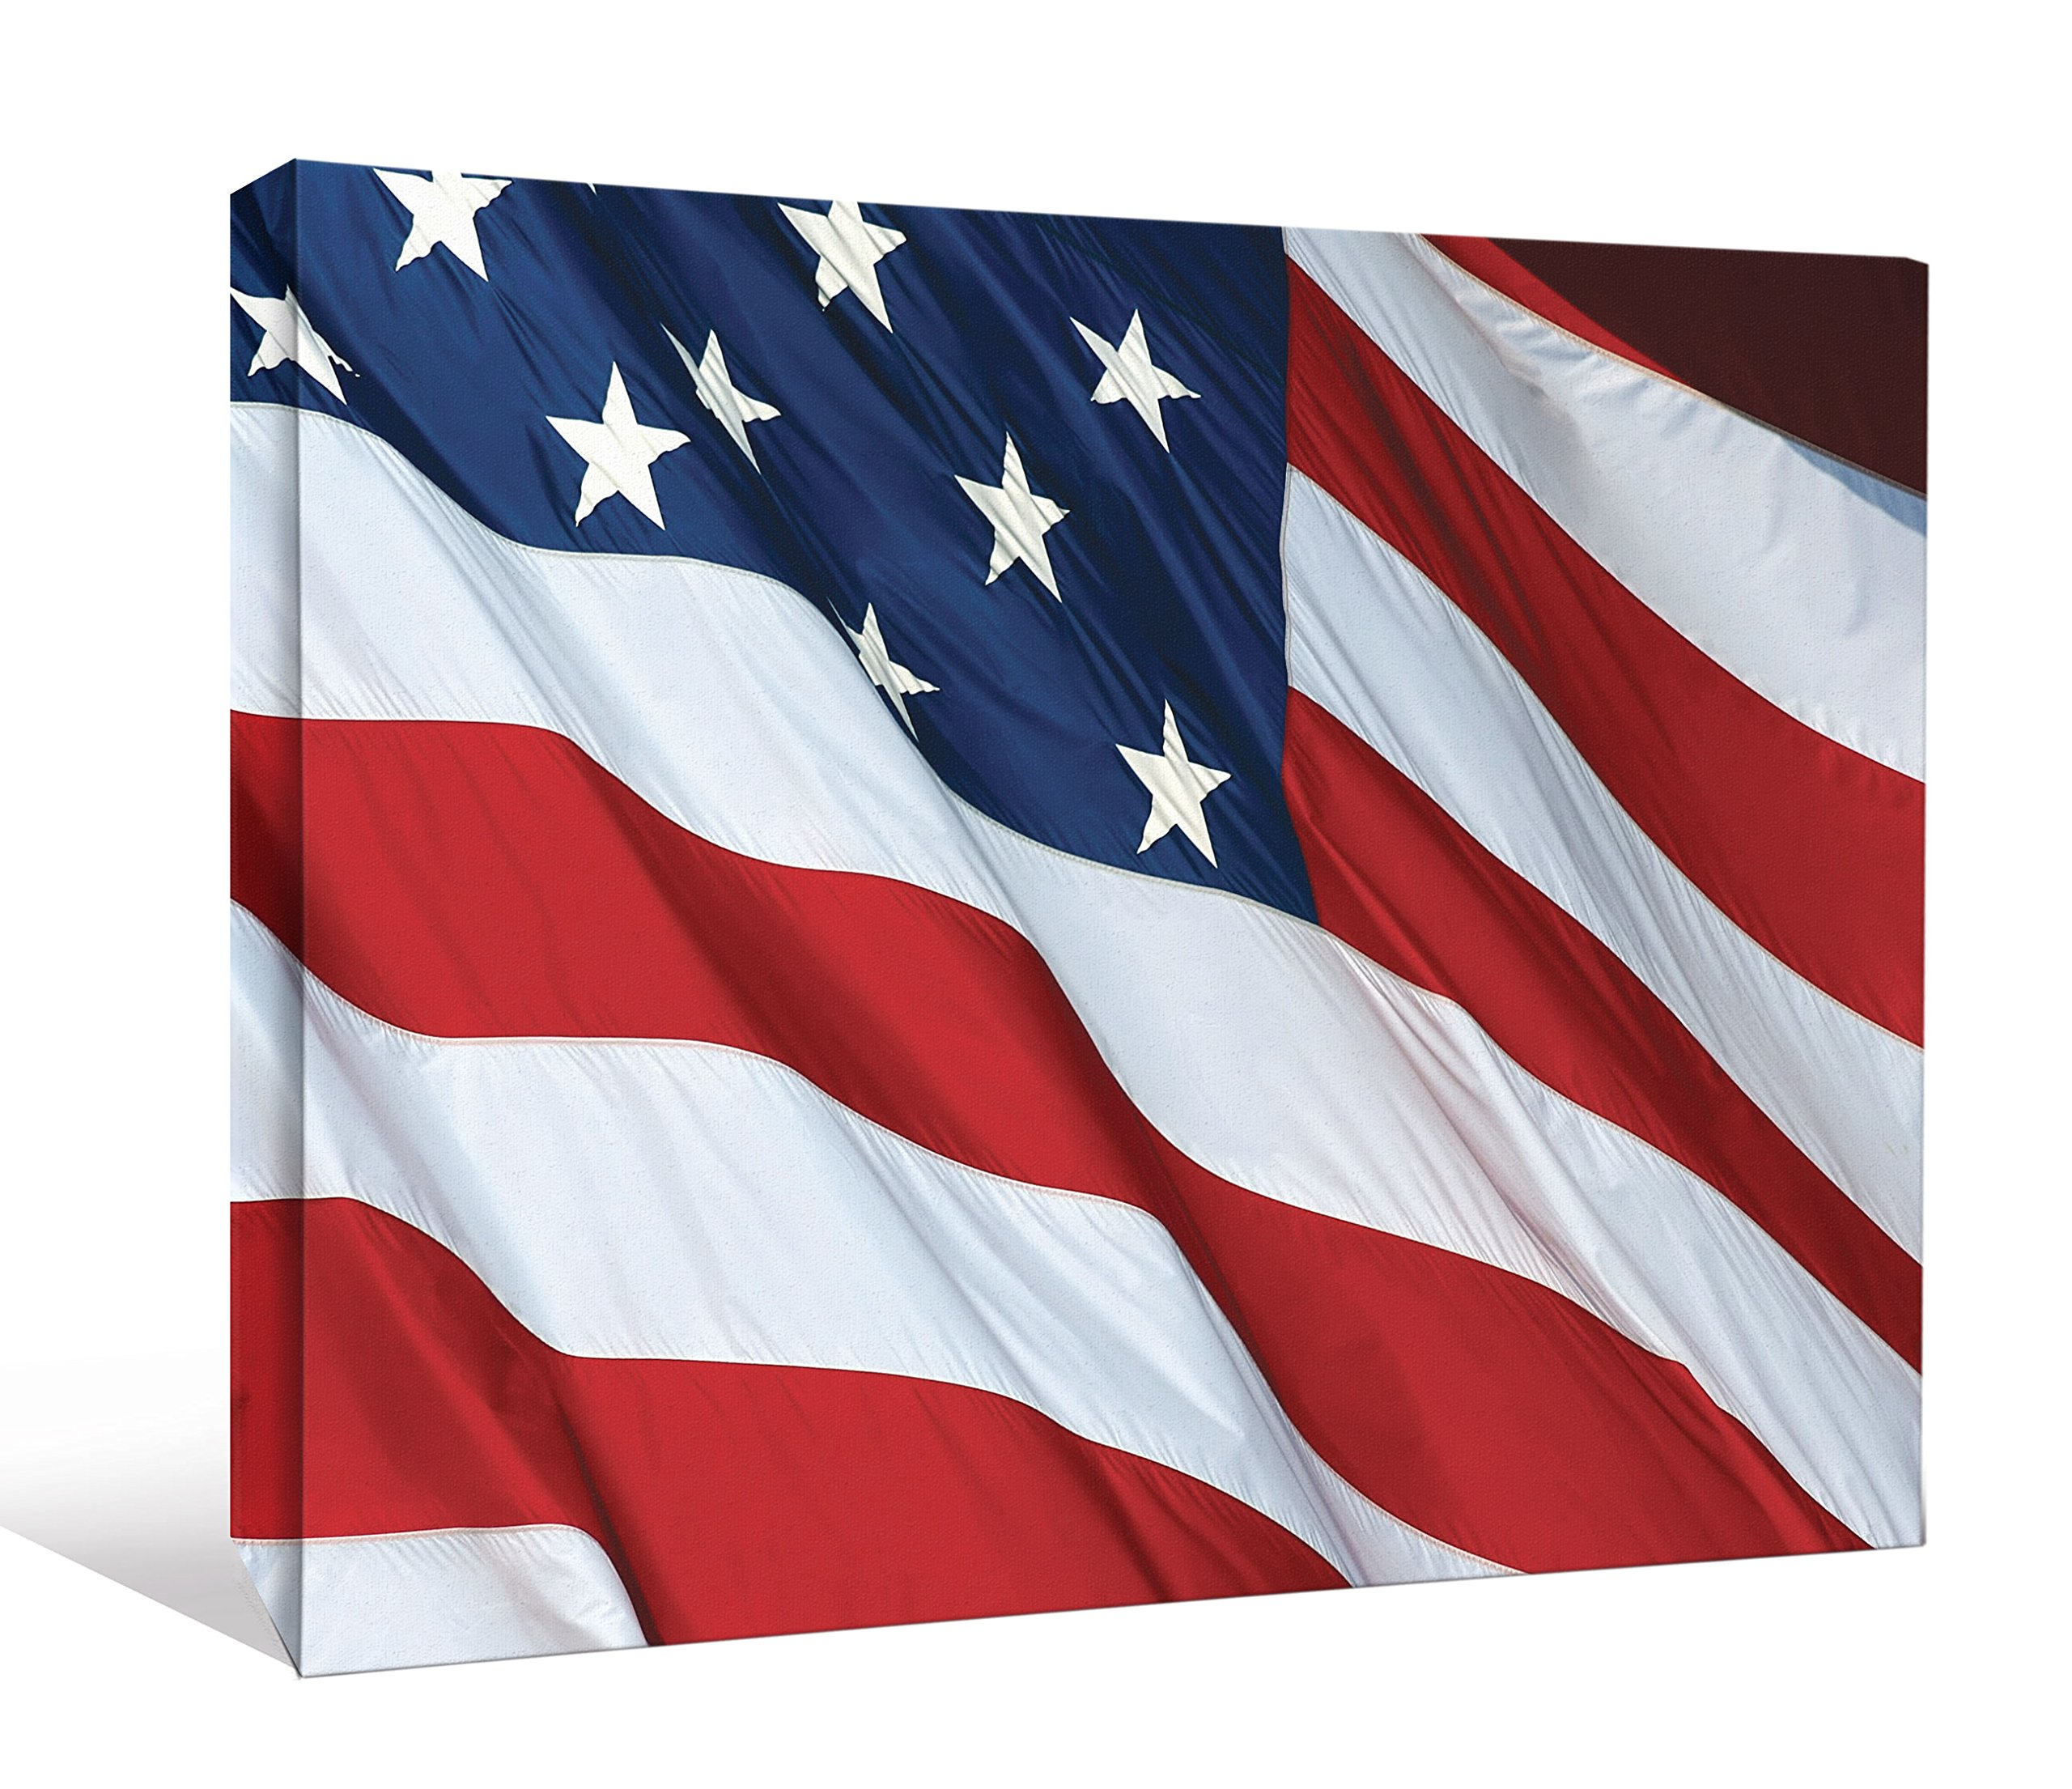 JP London DDCNV2159 Ready to Hang Feature Wall Art 2'' Thick Heavyweight Gallery Wrap Canvas God Bless America USA Flag At 60'' Wide by 40'' High